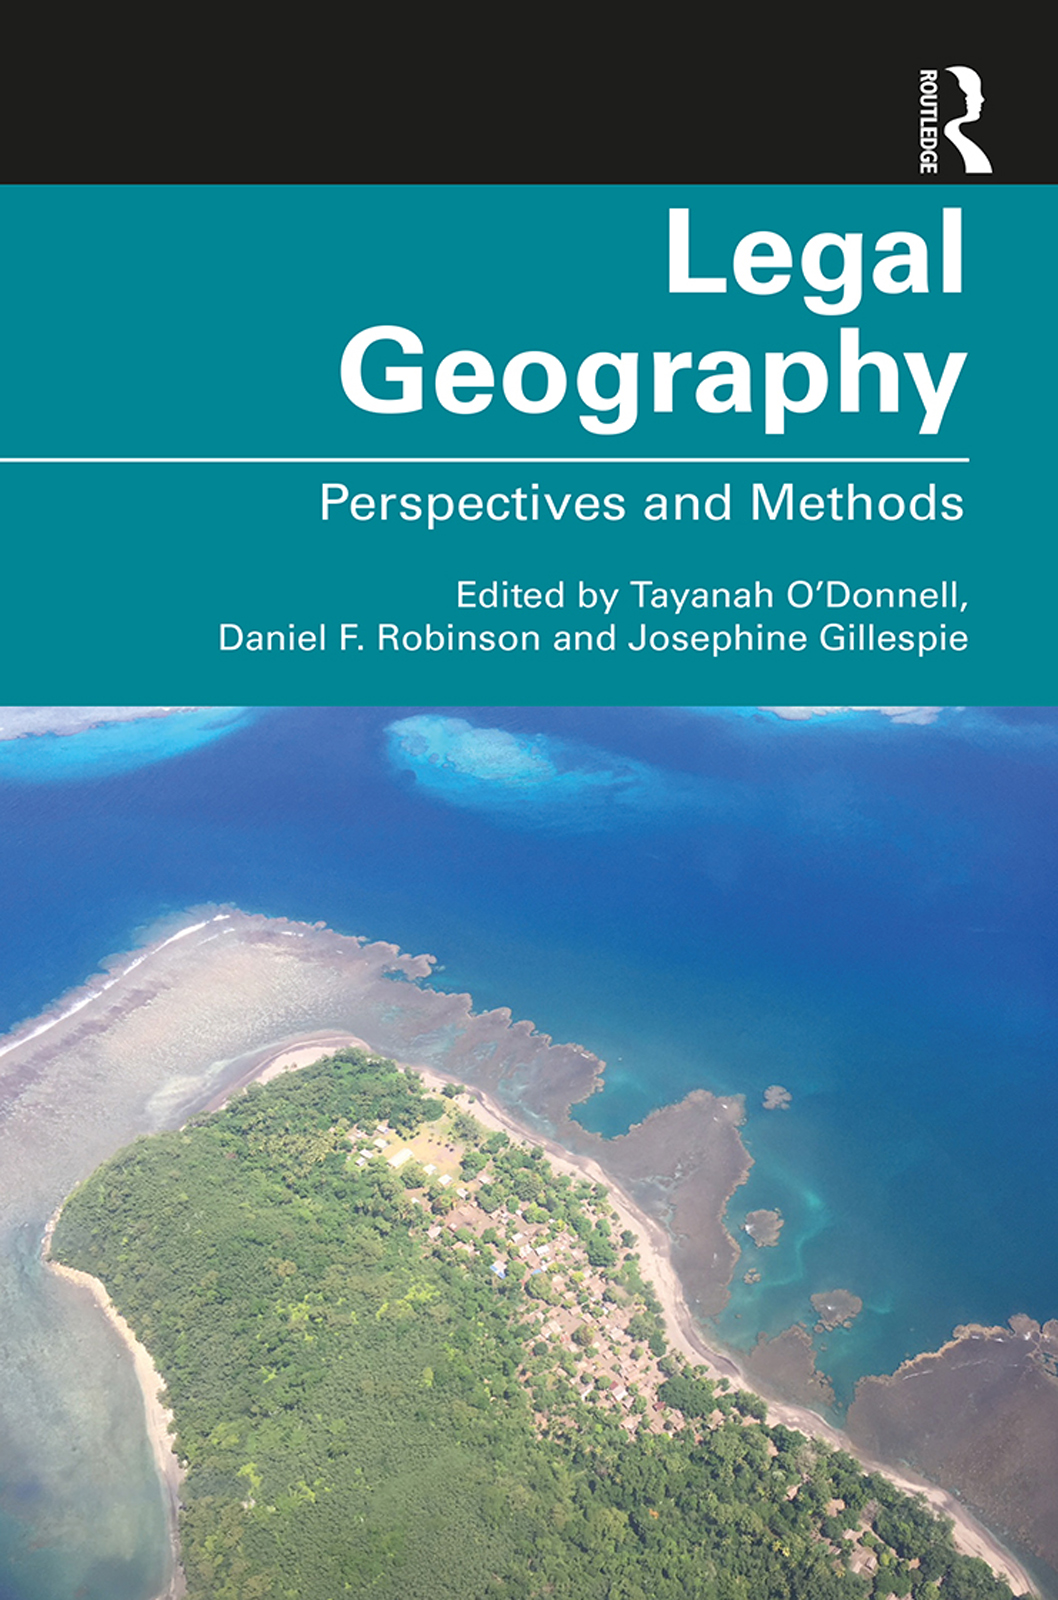 Legal Geography: Perspectives and Methods book cover